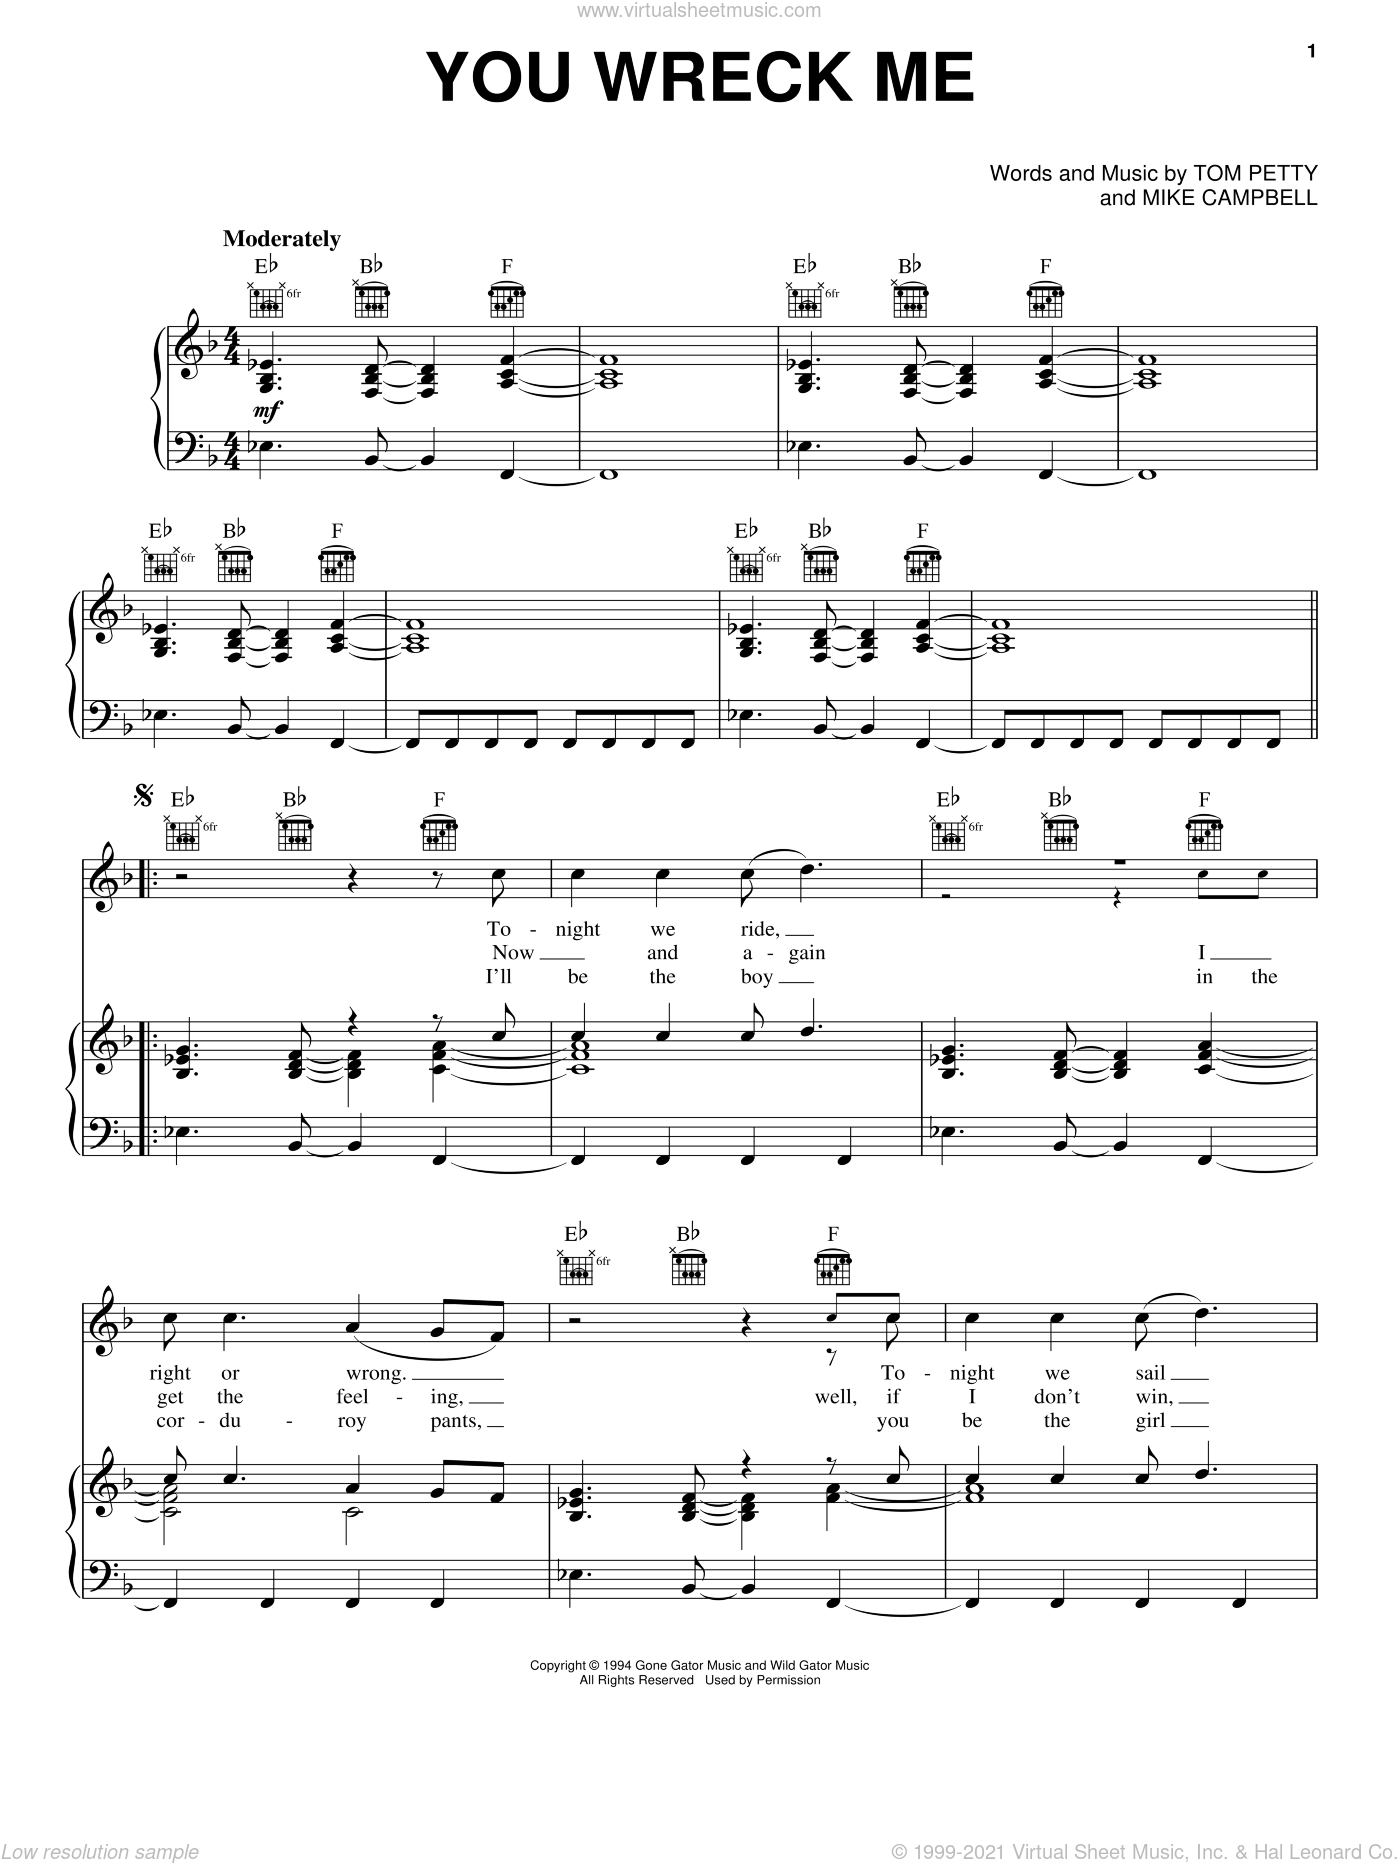 You Wreck Me sheet music for voice, piano or guitar by Tom Petty and Mike Campbell, intermediate skill level